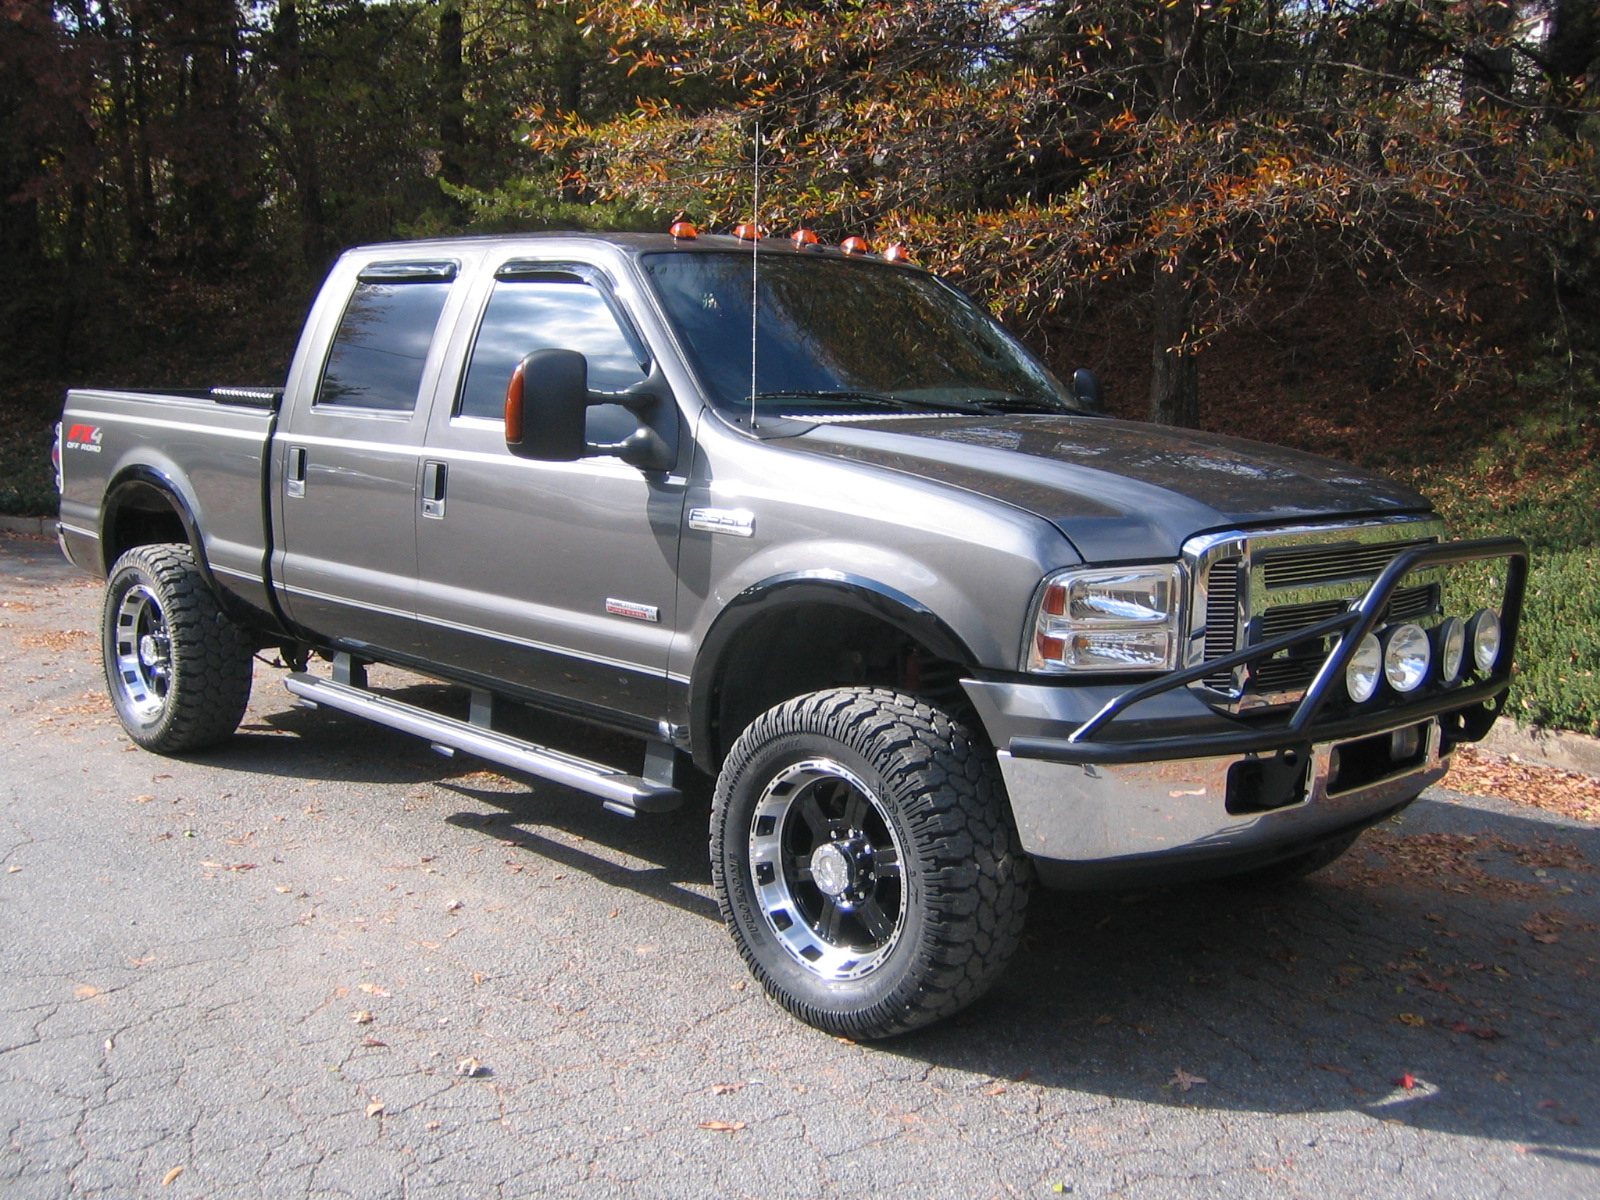 Ford F-350 Super Duty #17